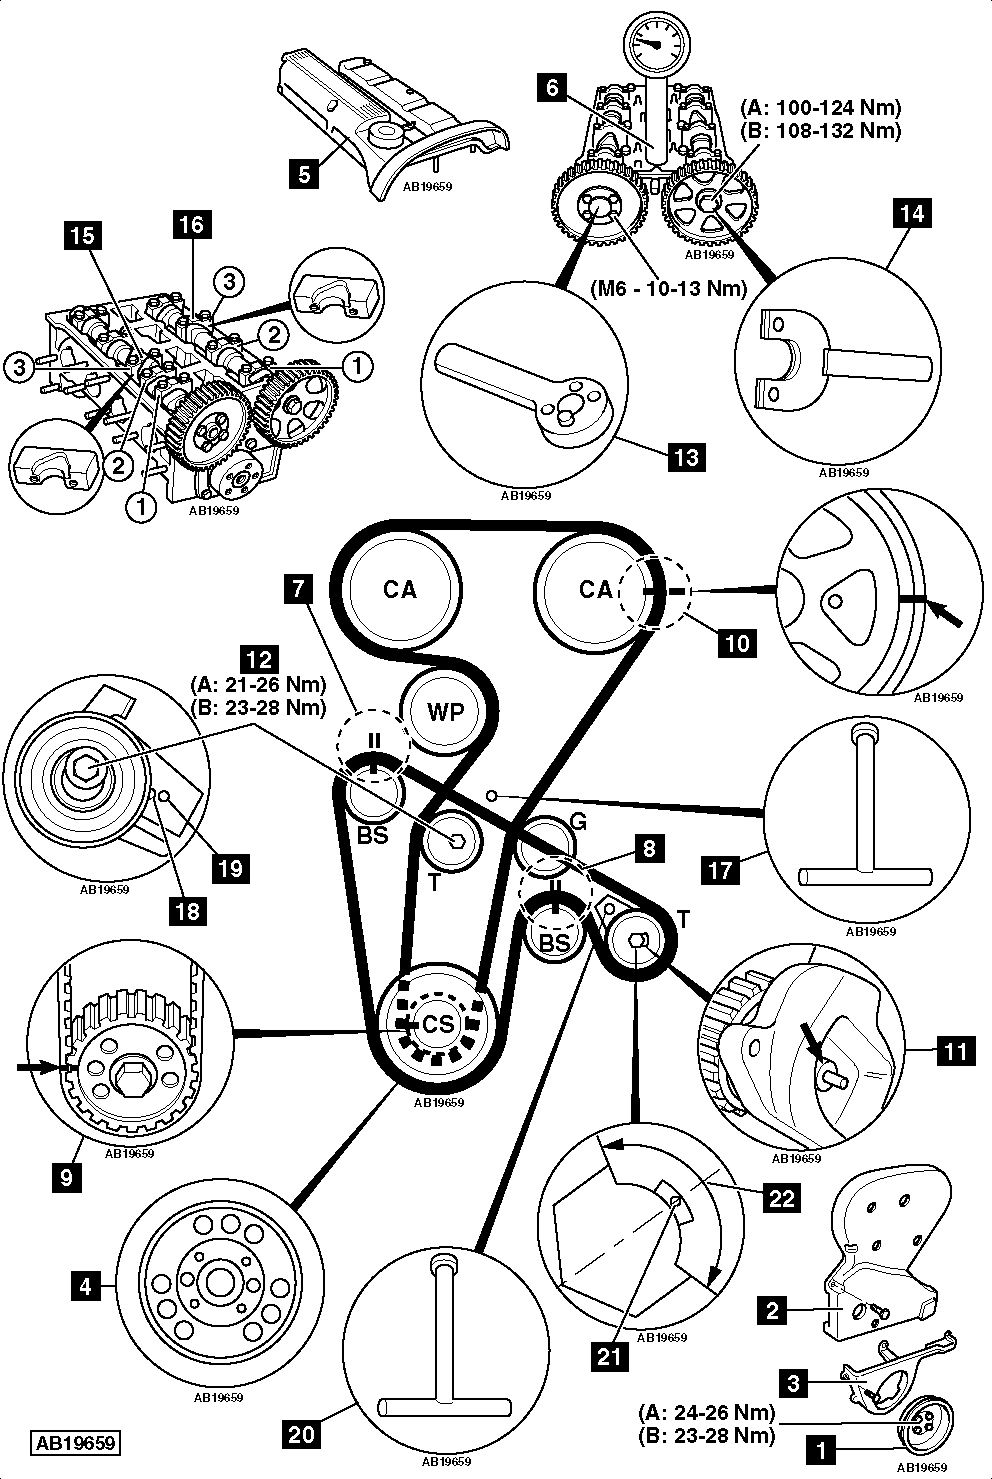 2lodb Timing Chain Marks Toyota Tarago 2001 Engine 2az Fe 2 additionally 5 Cylinder Engine Diagram further Mazda Titan 4 6 2005 Specs And Images as well Wiring Diagram 2007 Mercury Montego additionally Showthread. on 2008 ford escape 4 cylinder engine